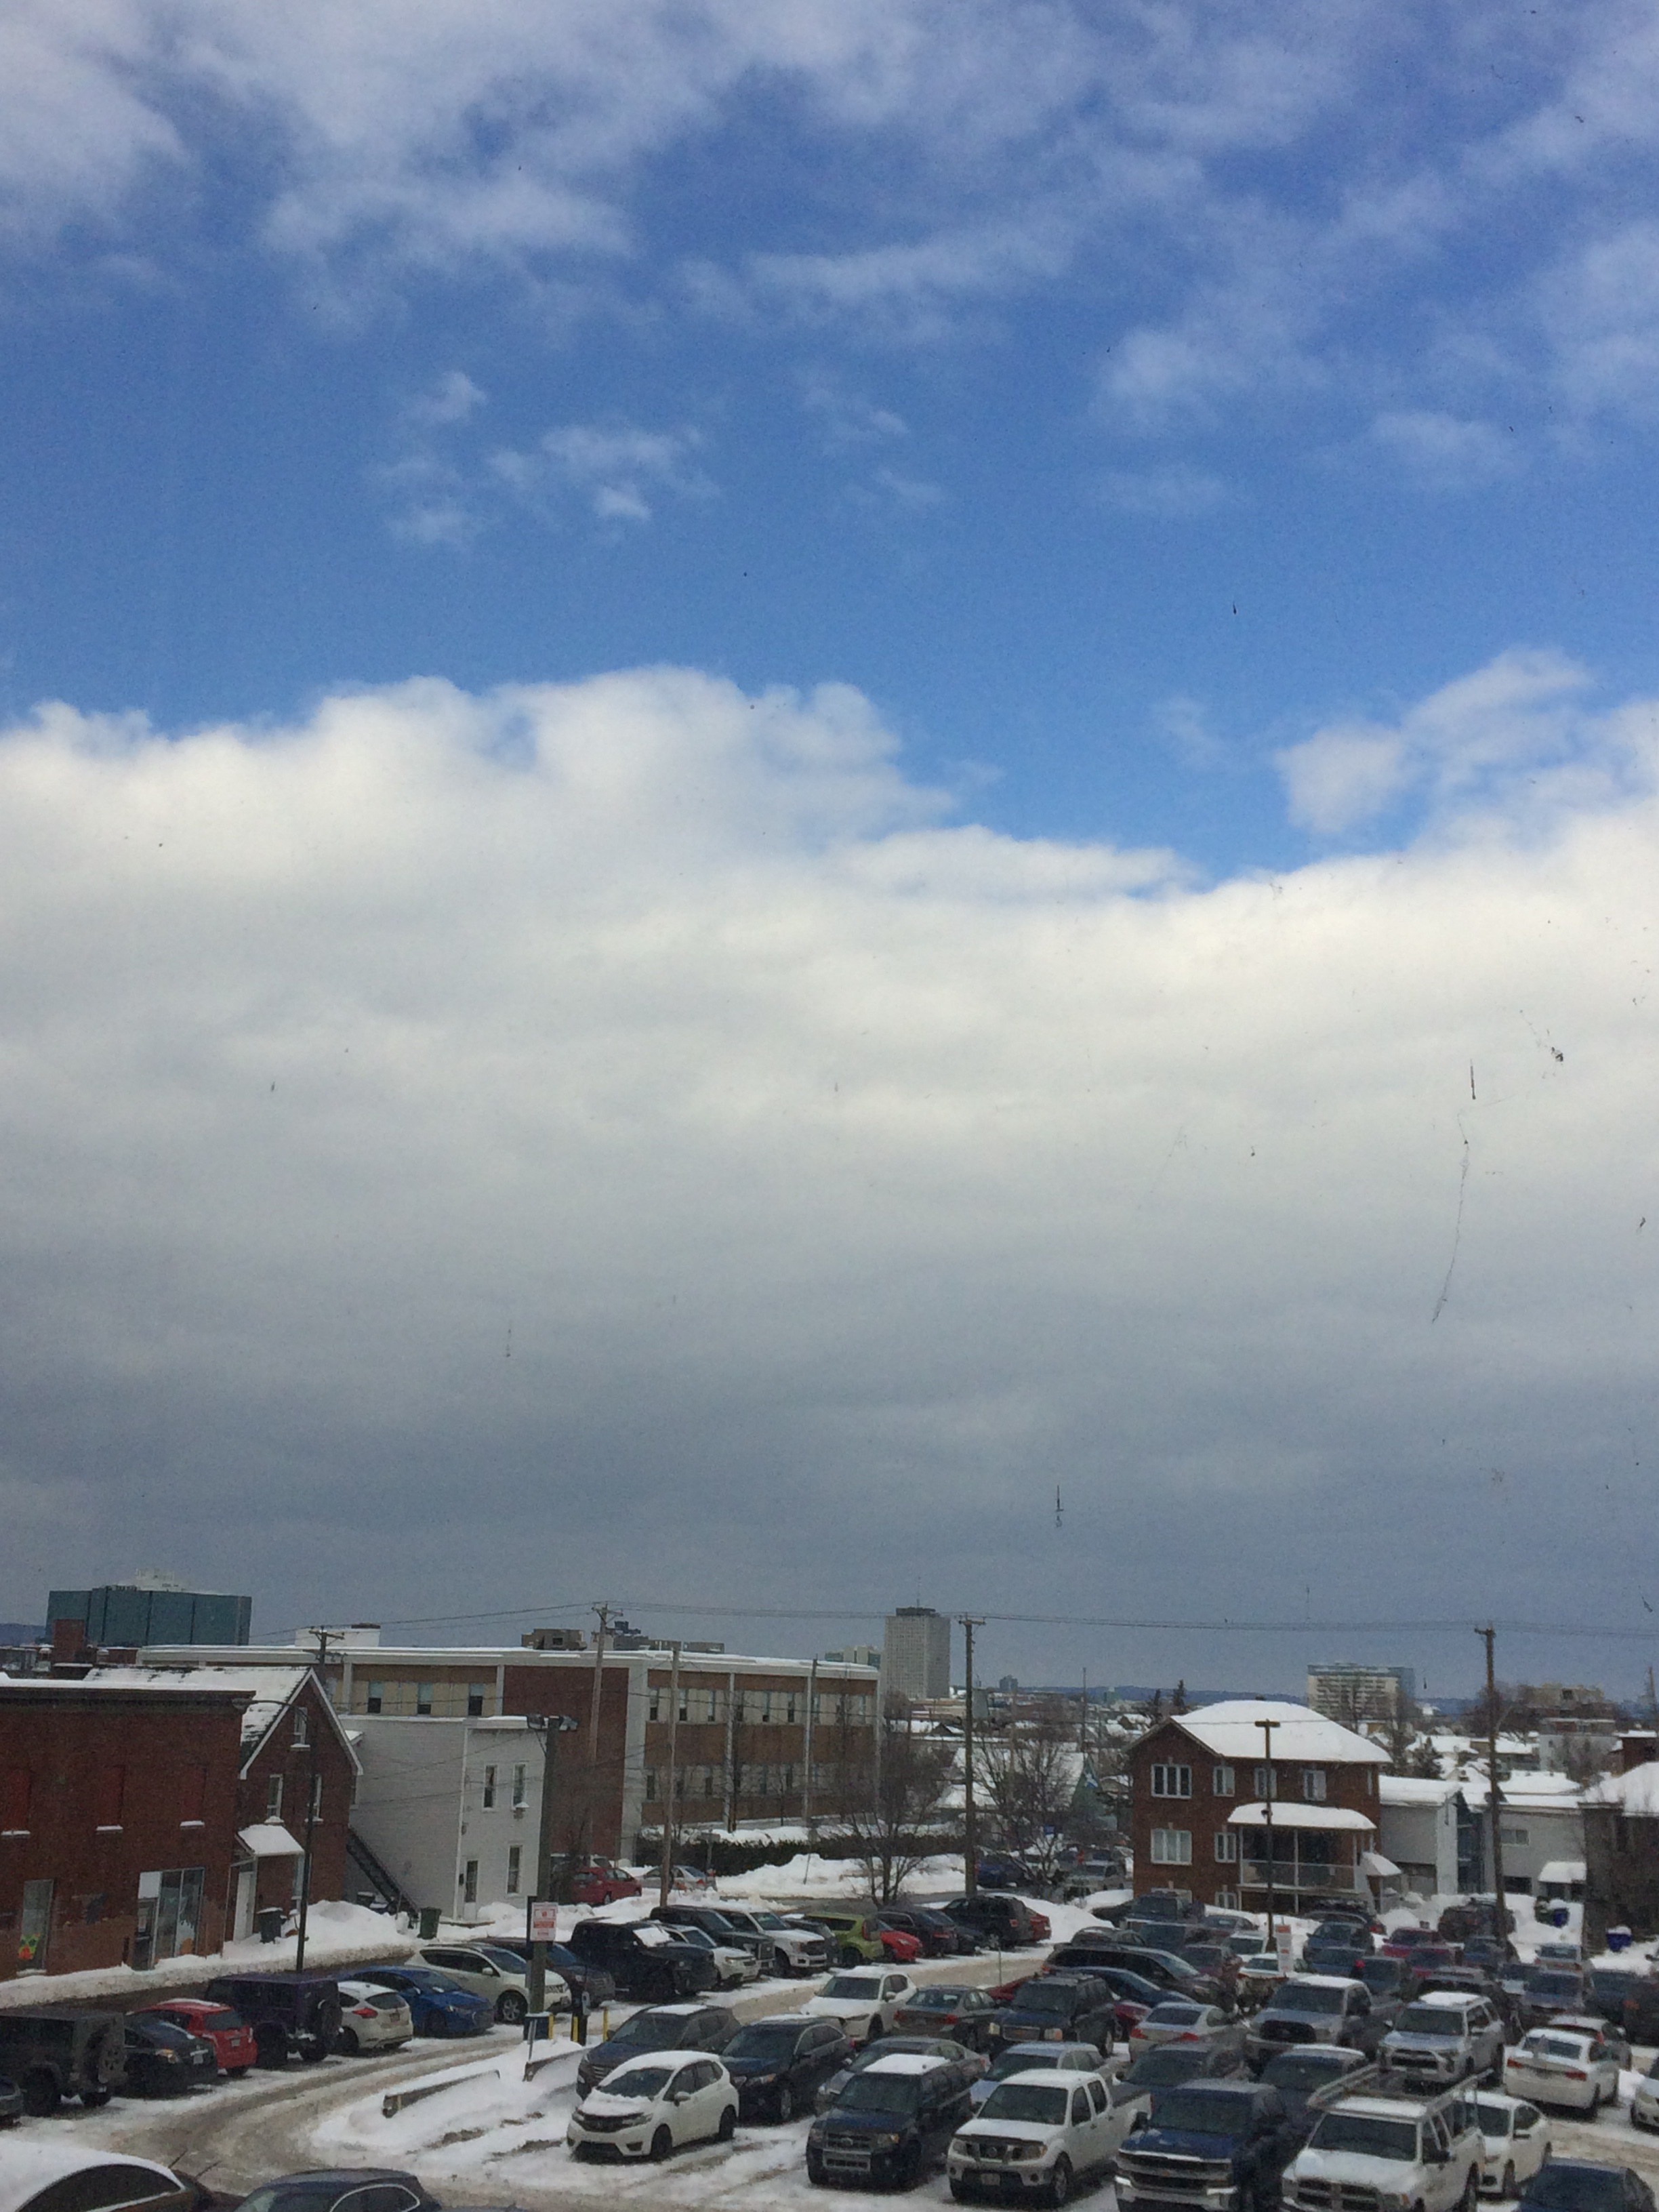 photo of blue sky, white clouds and a city street and parking lot